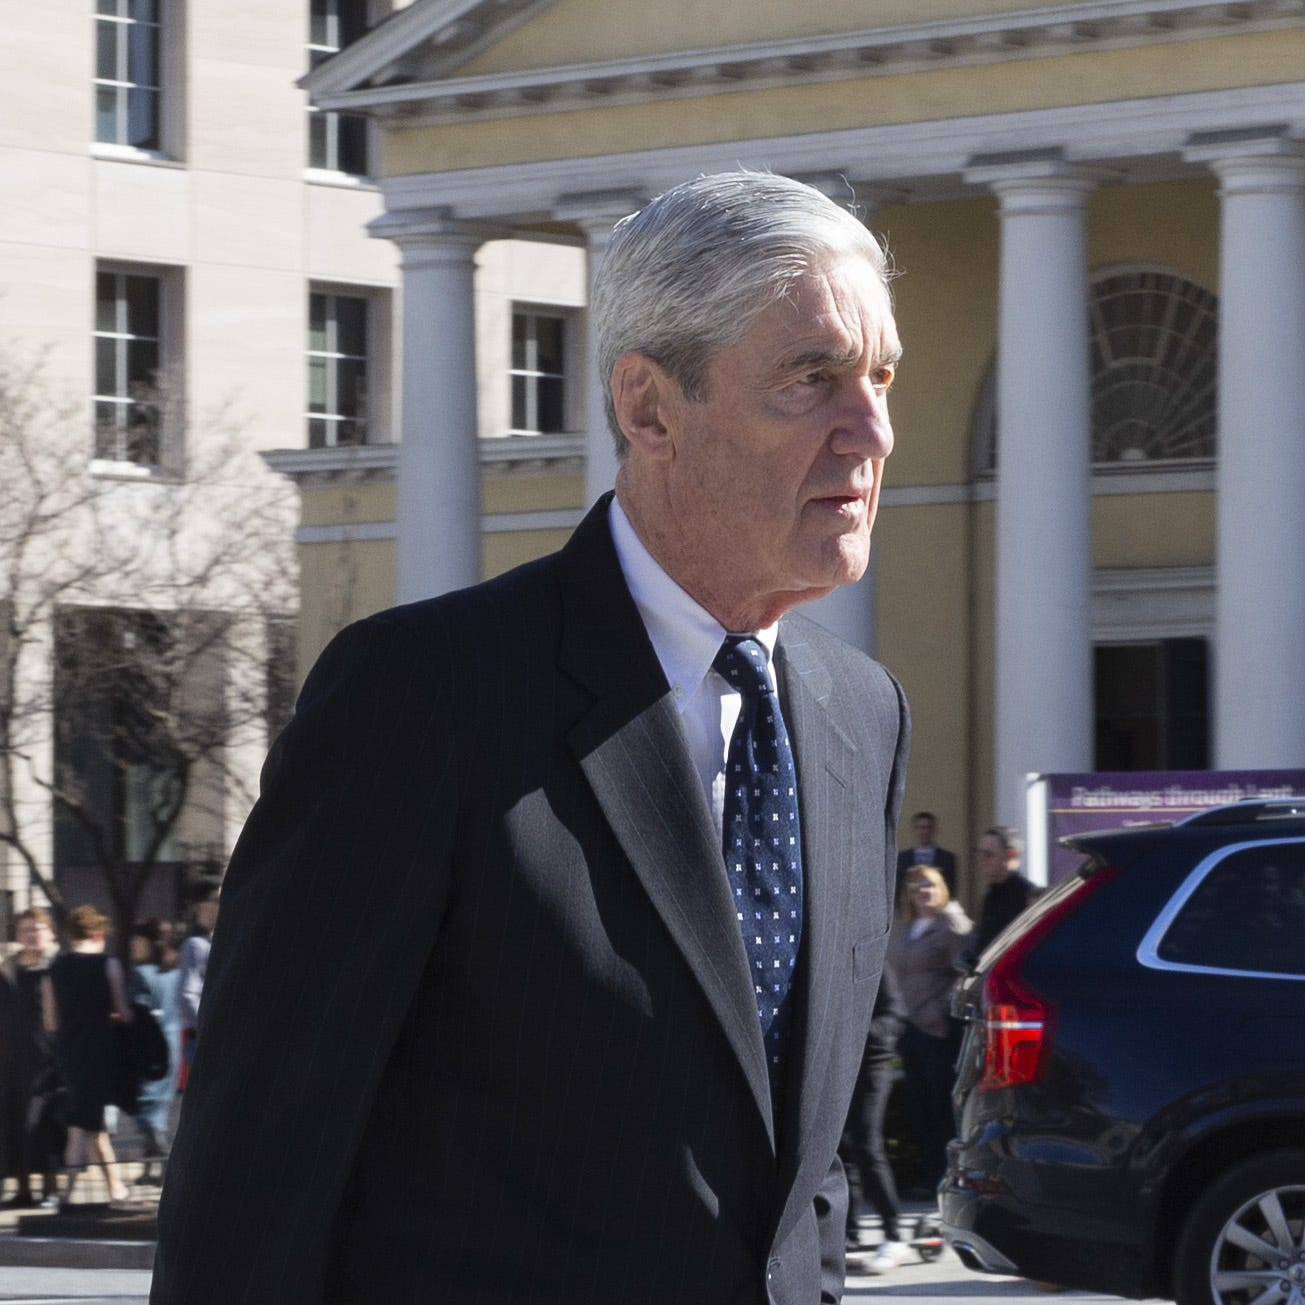 No Trump-Russia indictments from Mueller, but that doesn't mean no evidence or danger